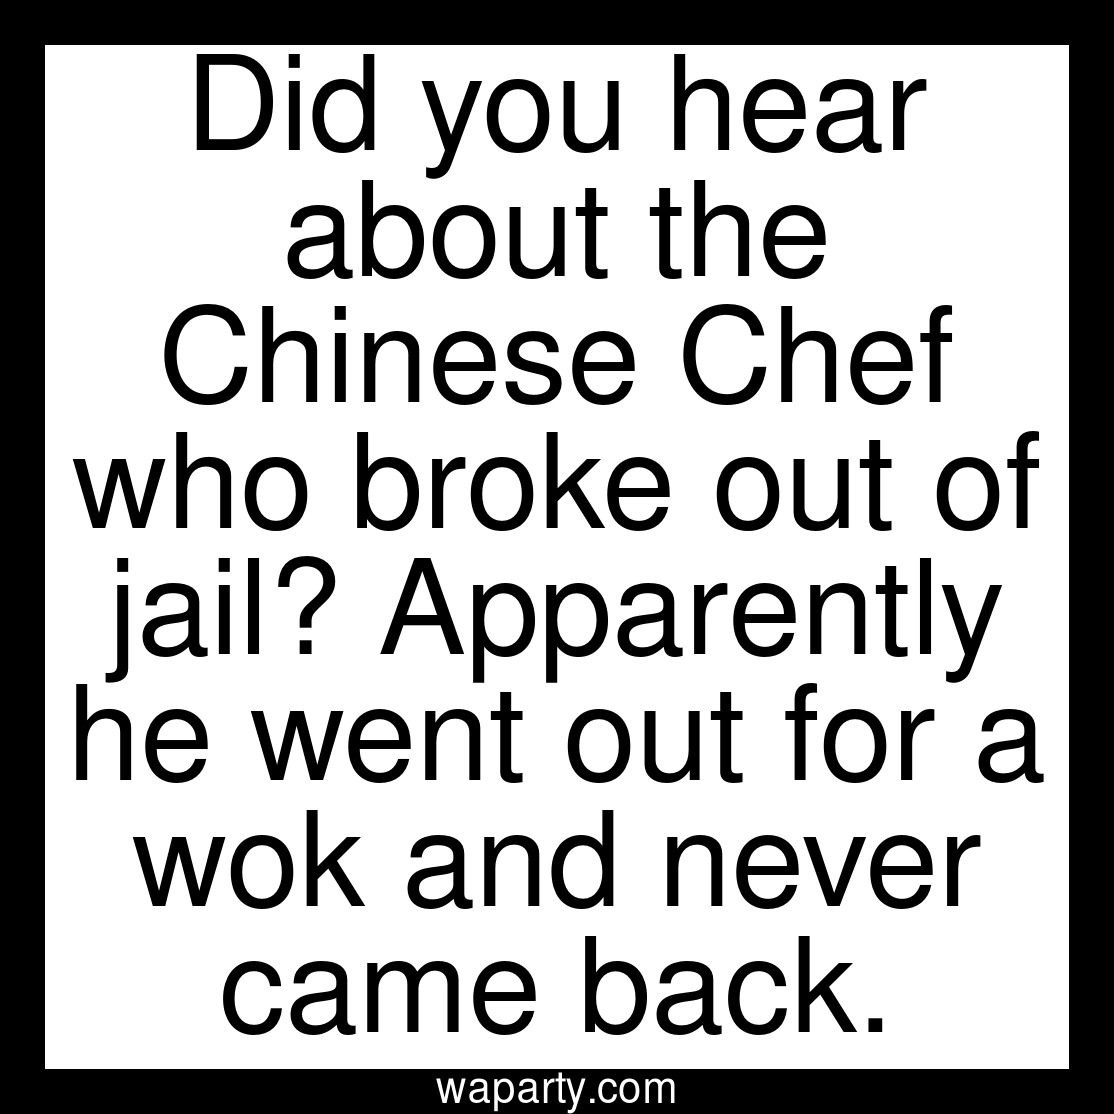 Did you hear about the Chinese Chef who broke out of jail? Apparently he went out for a wok and never came back.